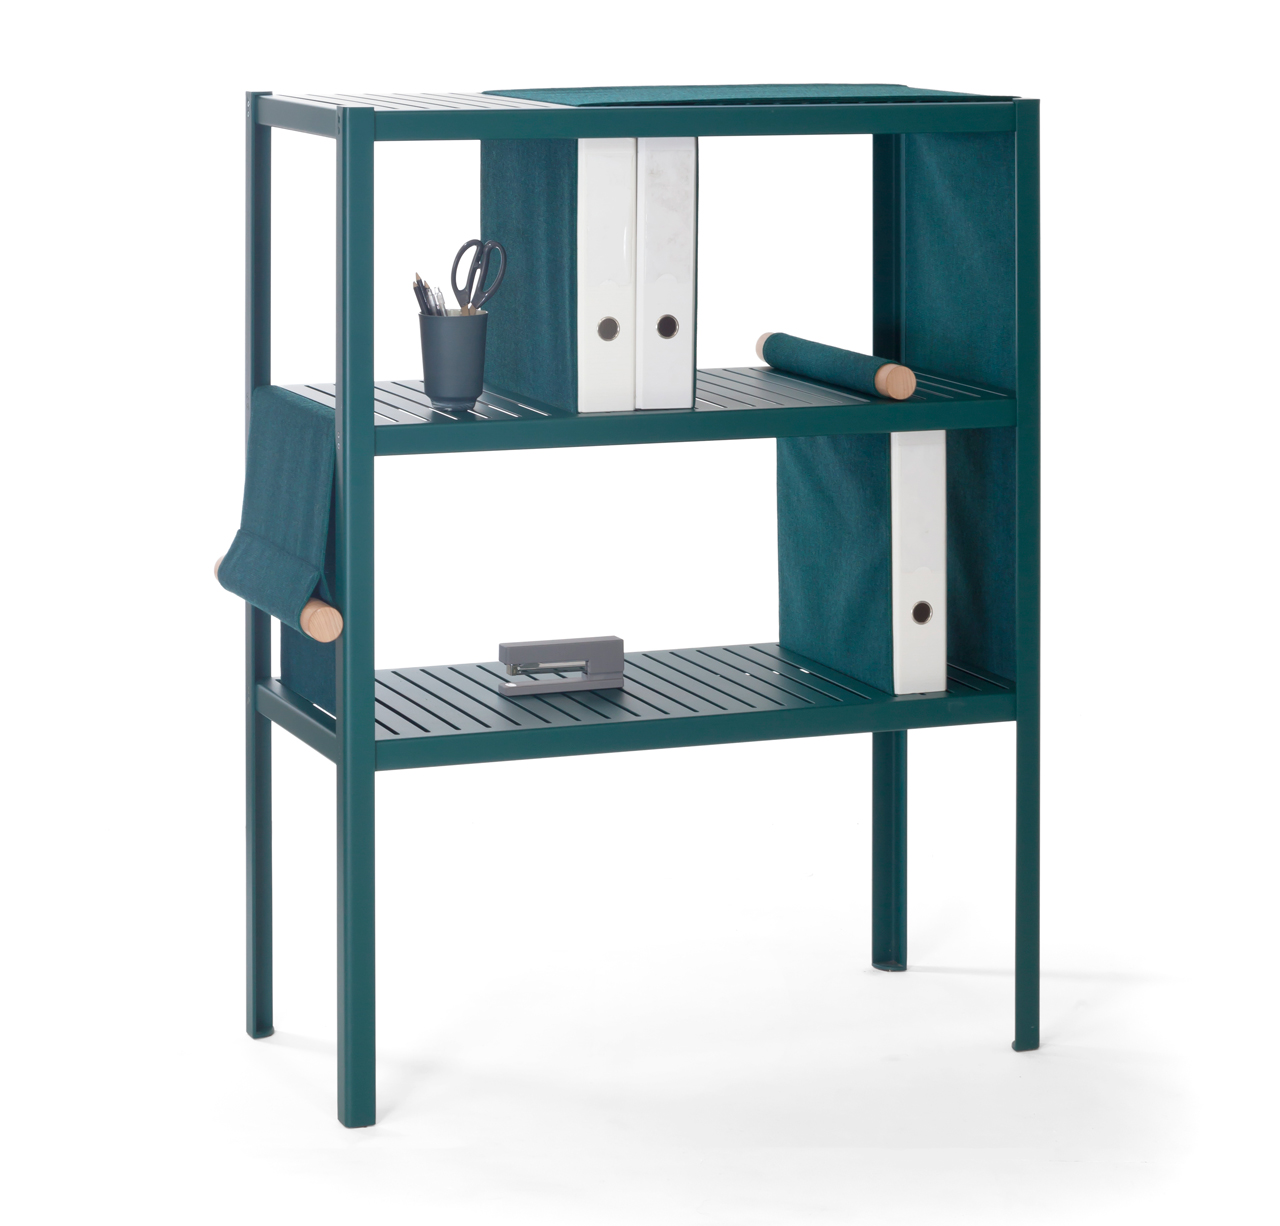 The Dressed Cabinet Incorporates Panels of Fabric You Can Adjust to Customize